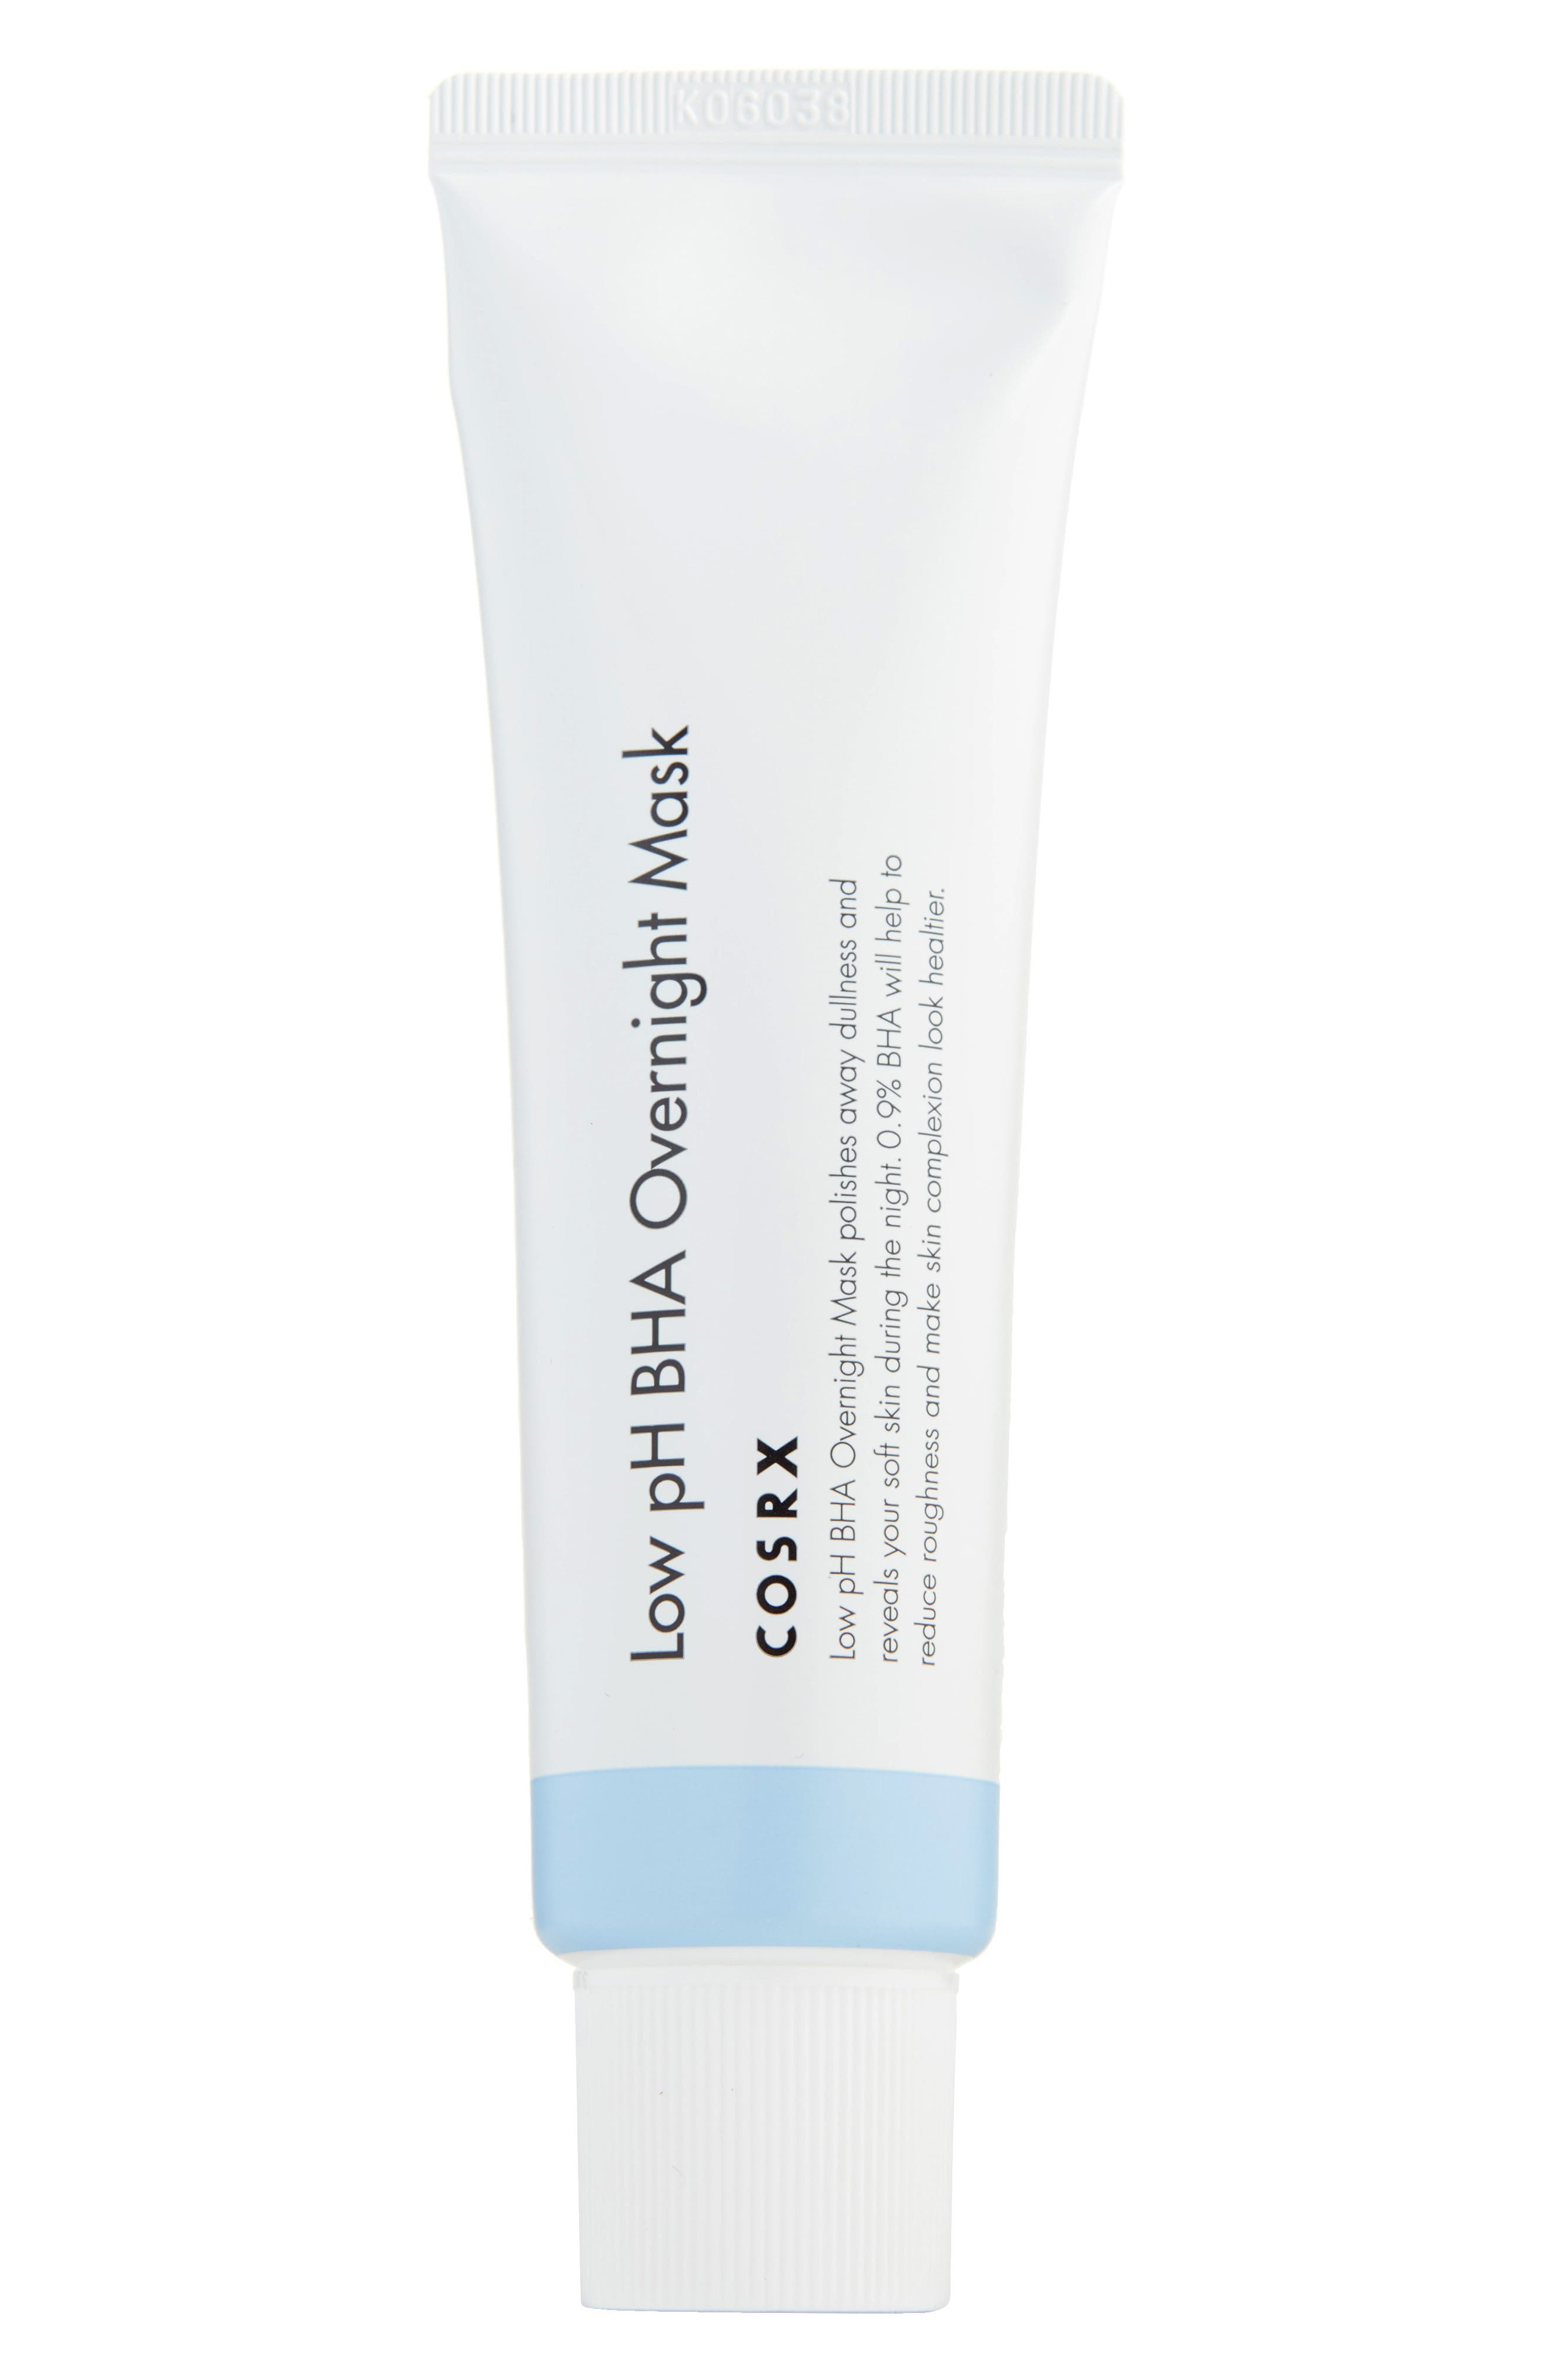 COSRX Low Ph Bha Overnight Mask in Clear